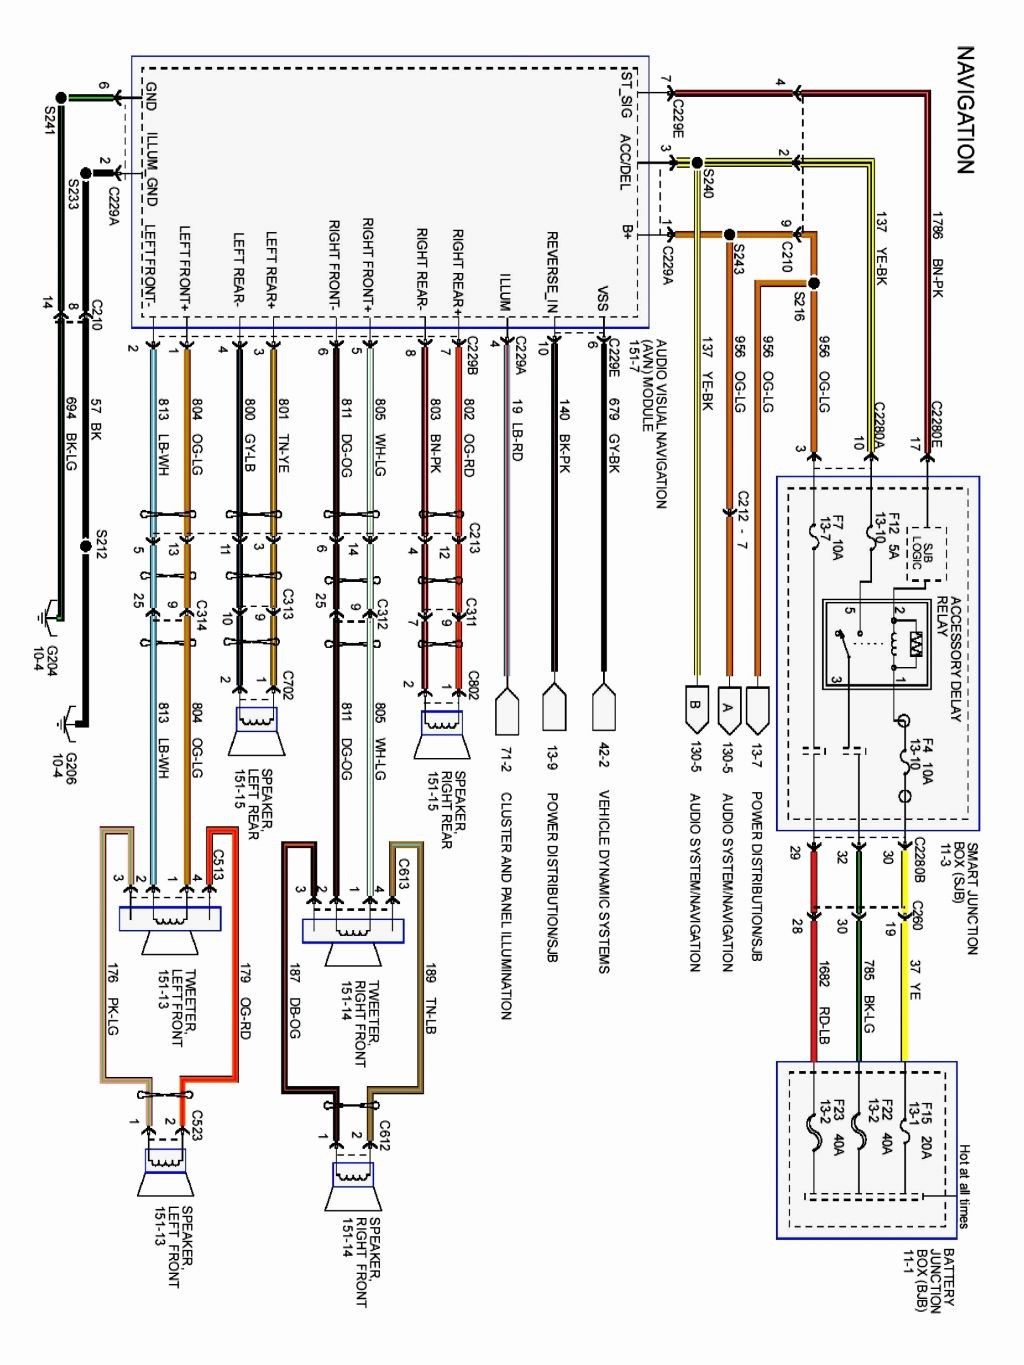 2004 Ford Taurus Radio Wiring Diagram from static-resources.imageservice.cloud